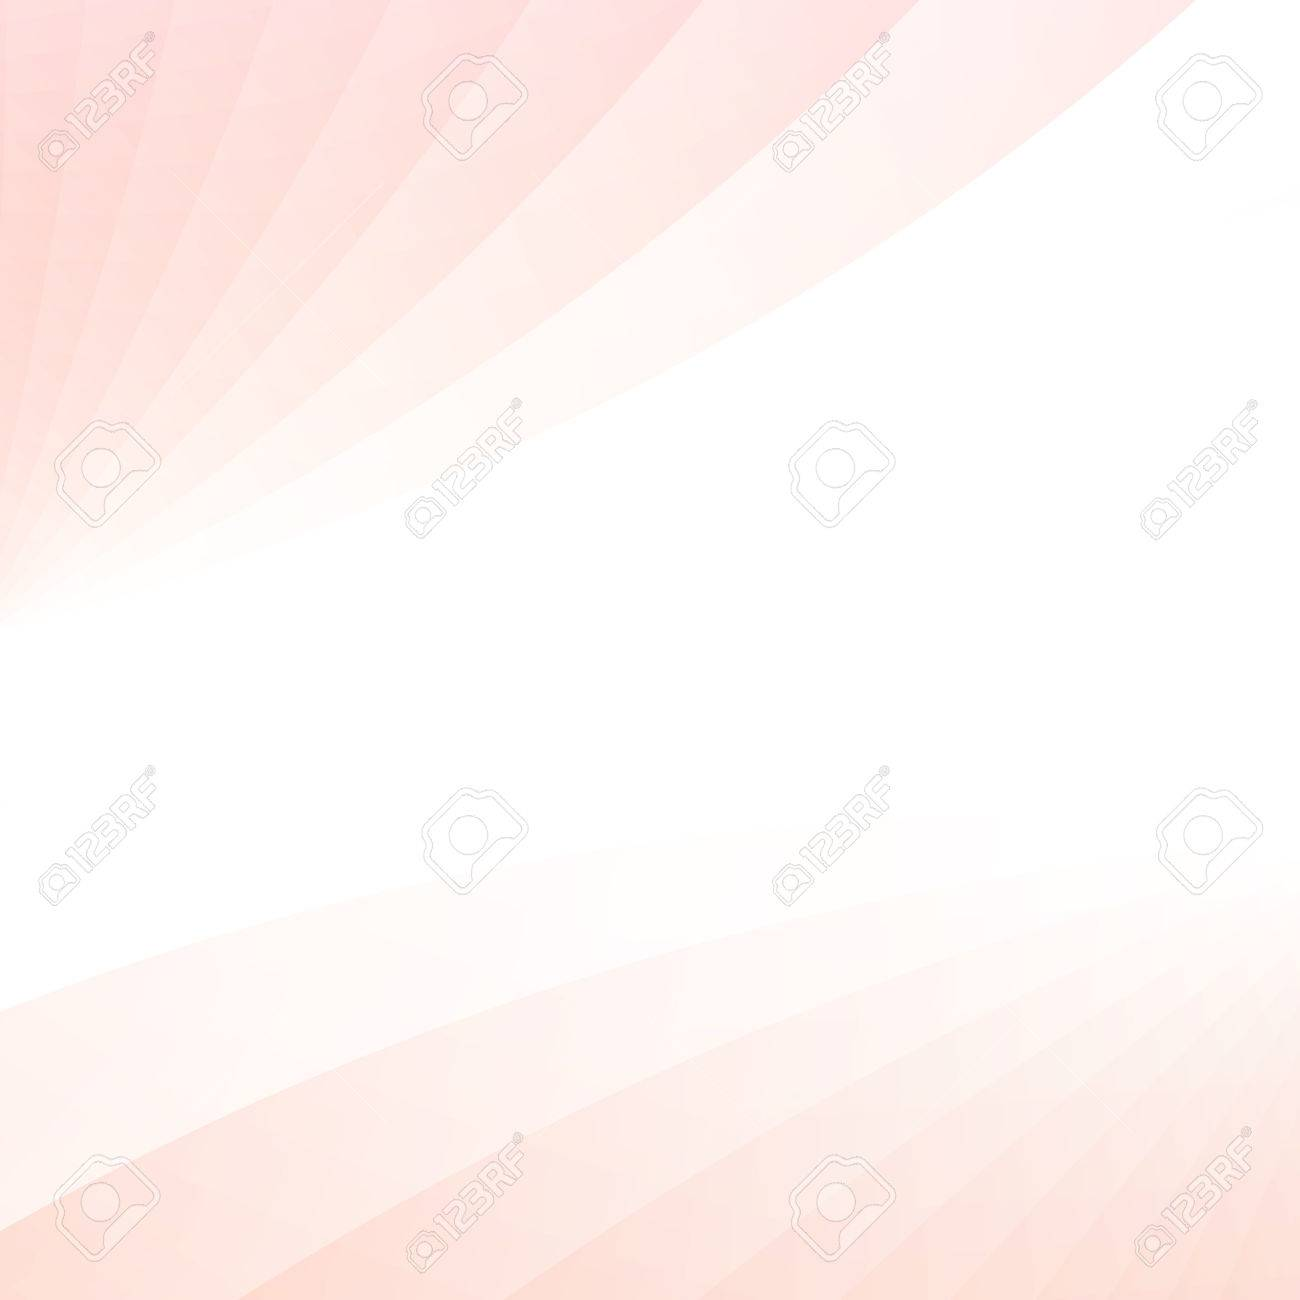 Abstract Background - 52118950